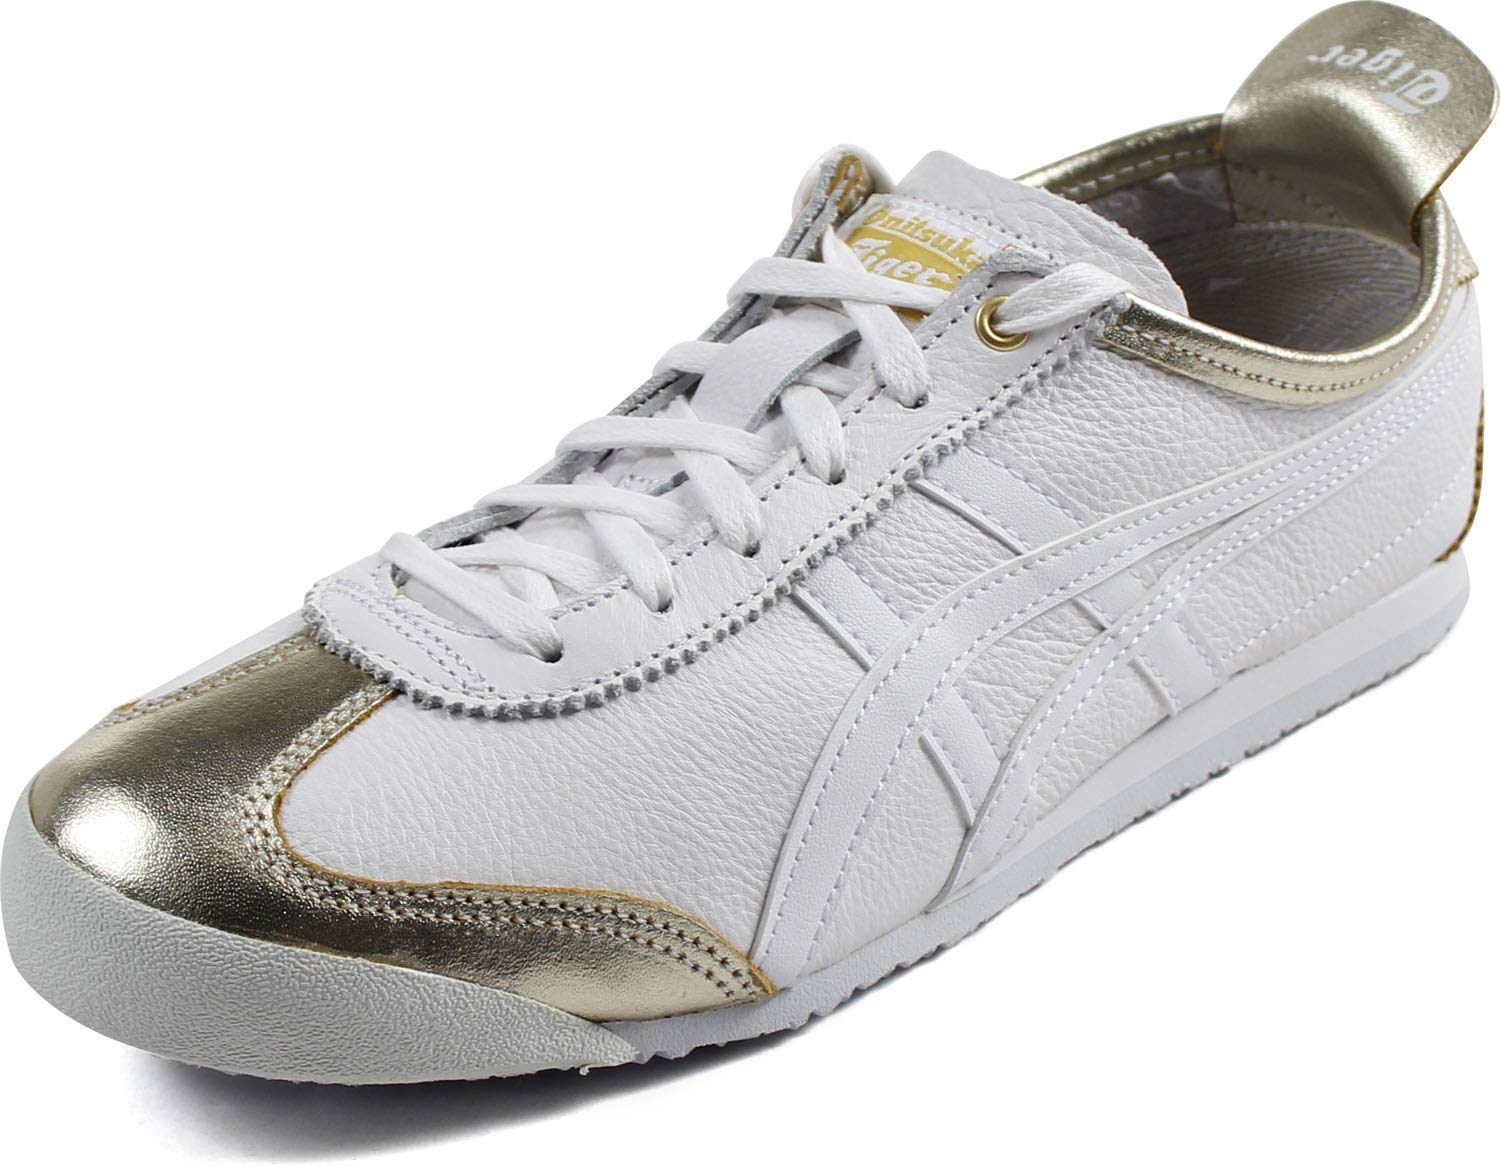 promo code e638d d3747 Onitsuka Tiger by Asics Unisex Mexico 66 Lich Gold/White 12 ...